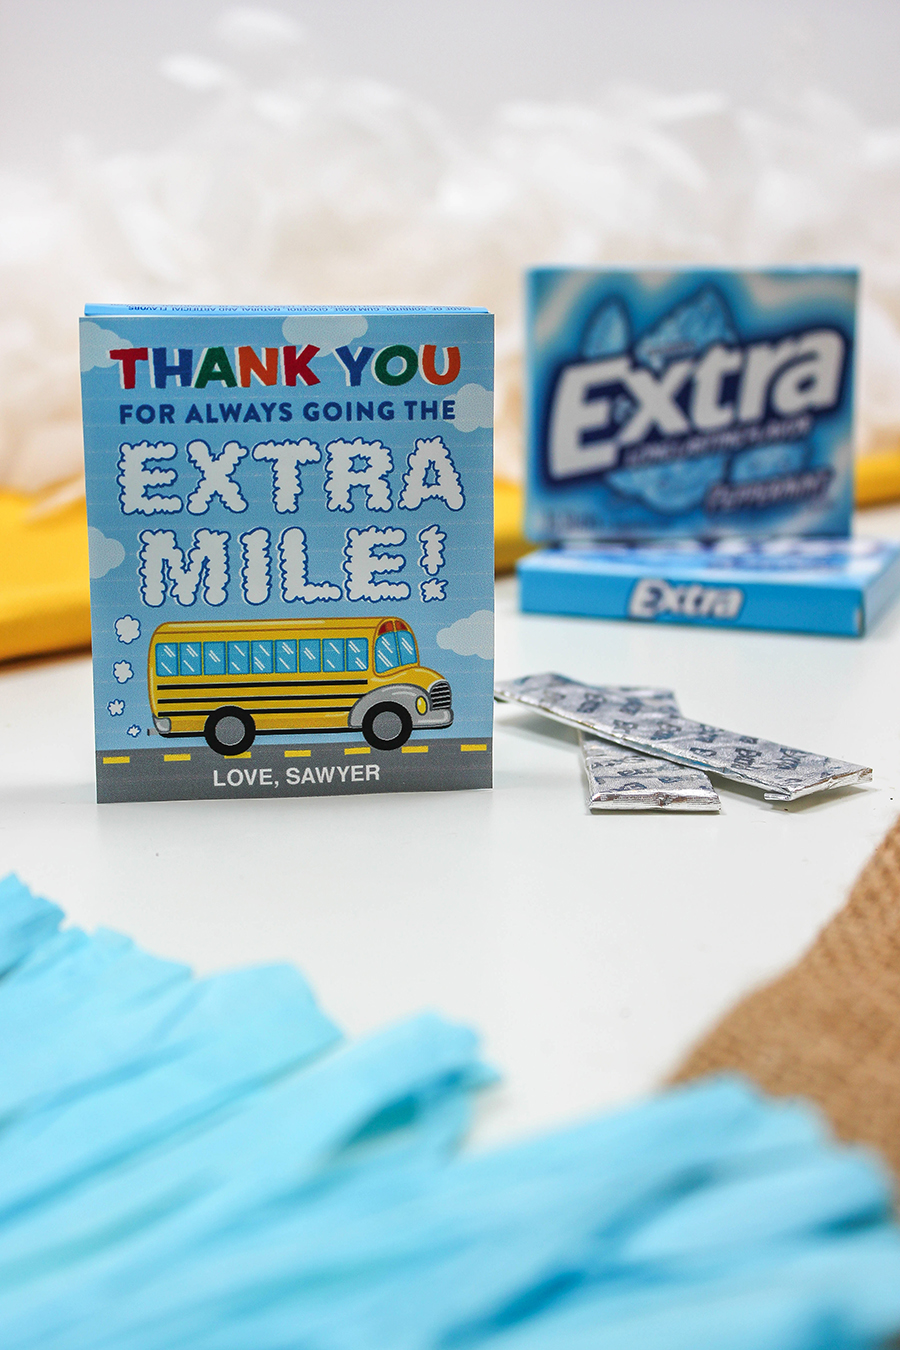 extra gum bus driver appreciation gift, school bus driver gift, thank you for always going the extra mile, extra gum gift, easy gift idea, bus driver gift, thank you gift, bus driver thank you gift, Just Add Confetti, Etsy shop, Etsy seller, gift tag printable, extra gum gift tag, school bus gift tag, DIY gift idea, DIY gift, gift for teacher, gift for bus driver, bus driver appreciation